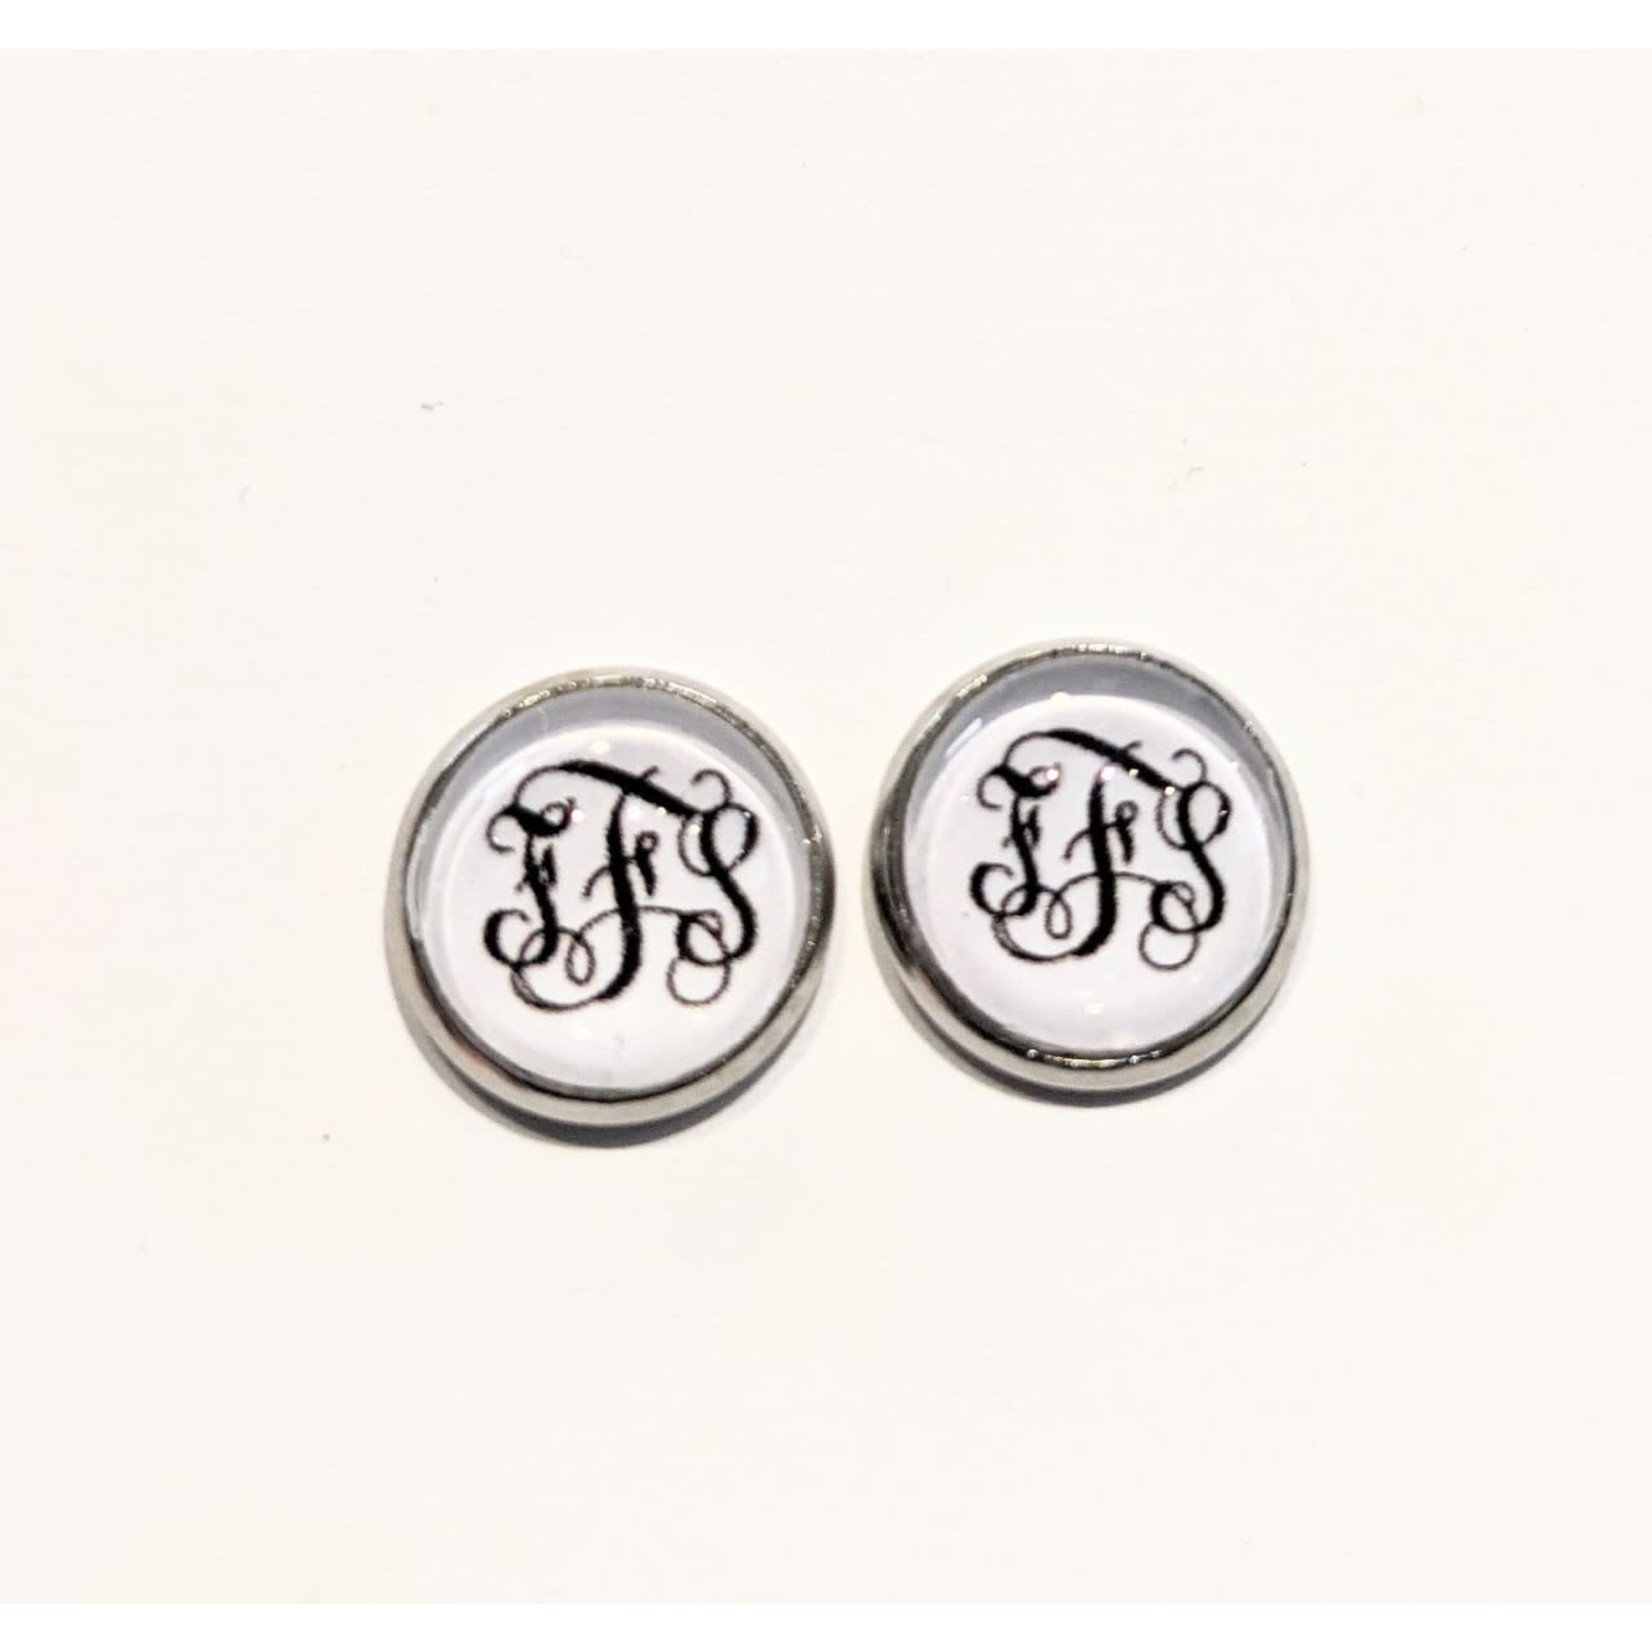 Earrings - FFS - White With Black Letters